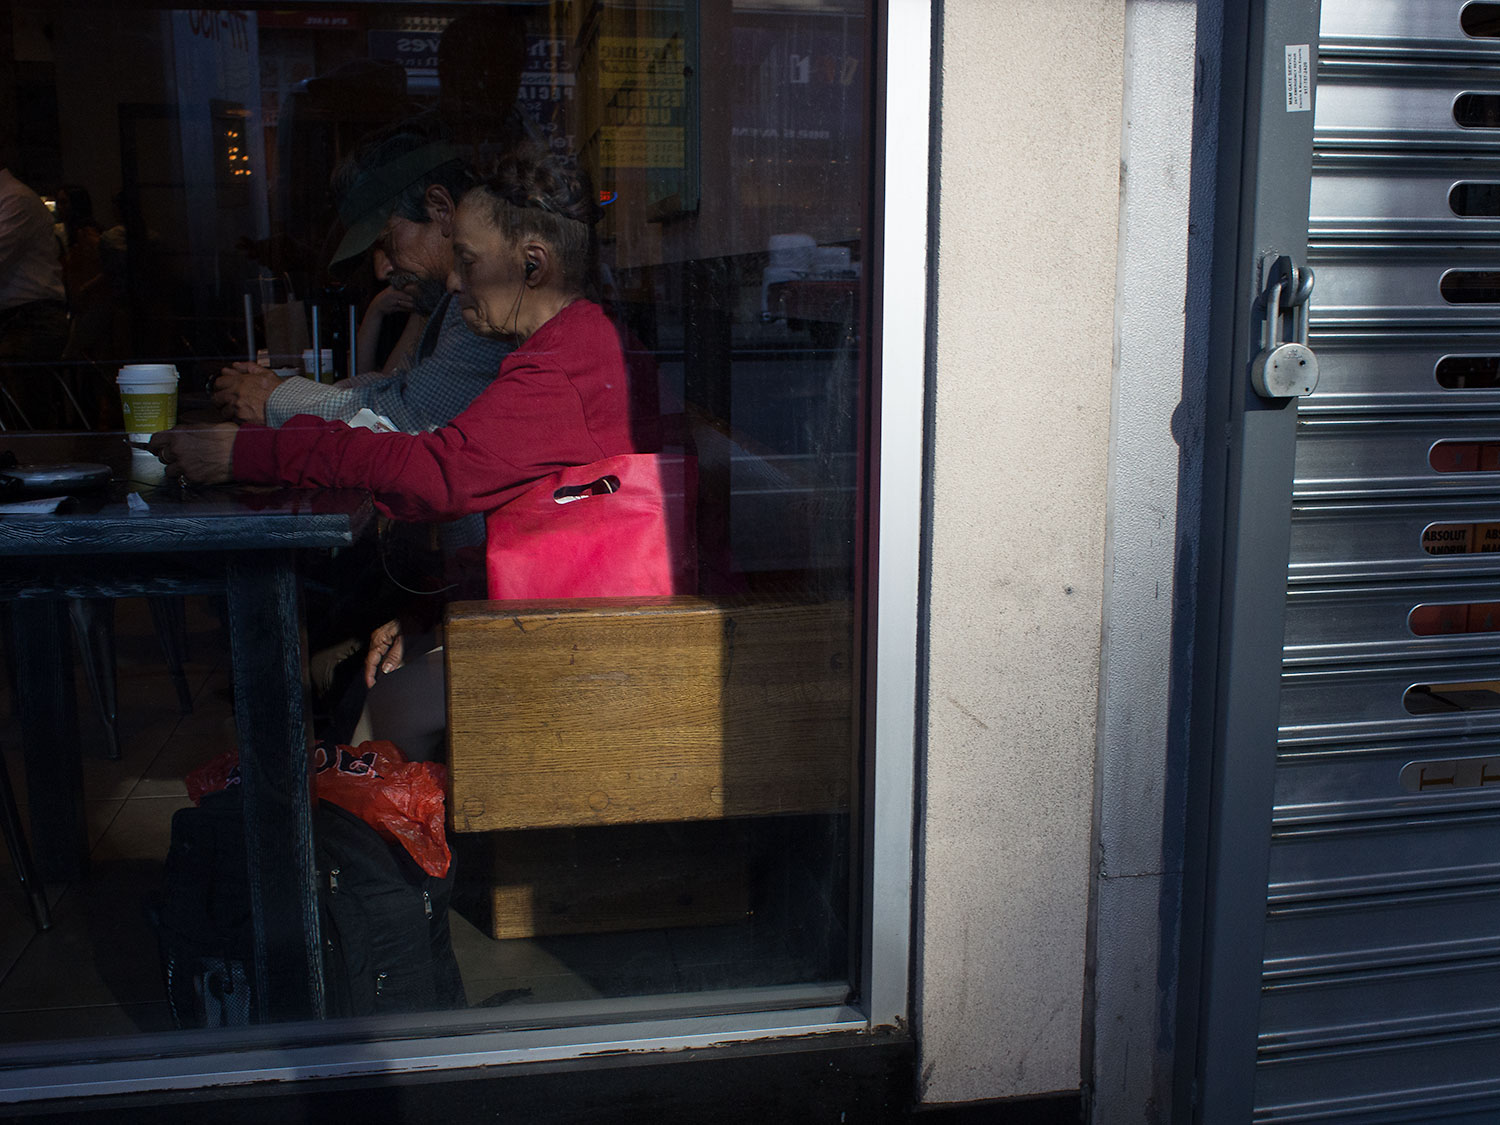 Quieter moments inside cafes and restaurants.